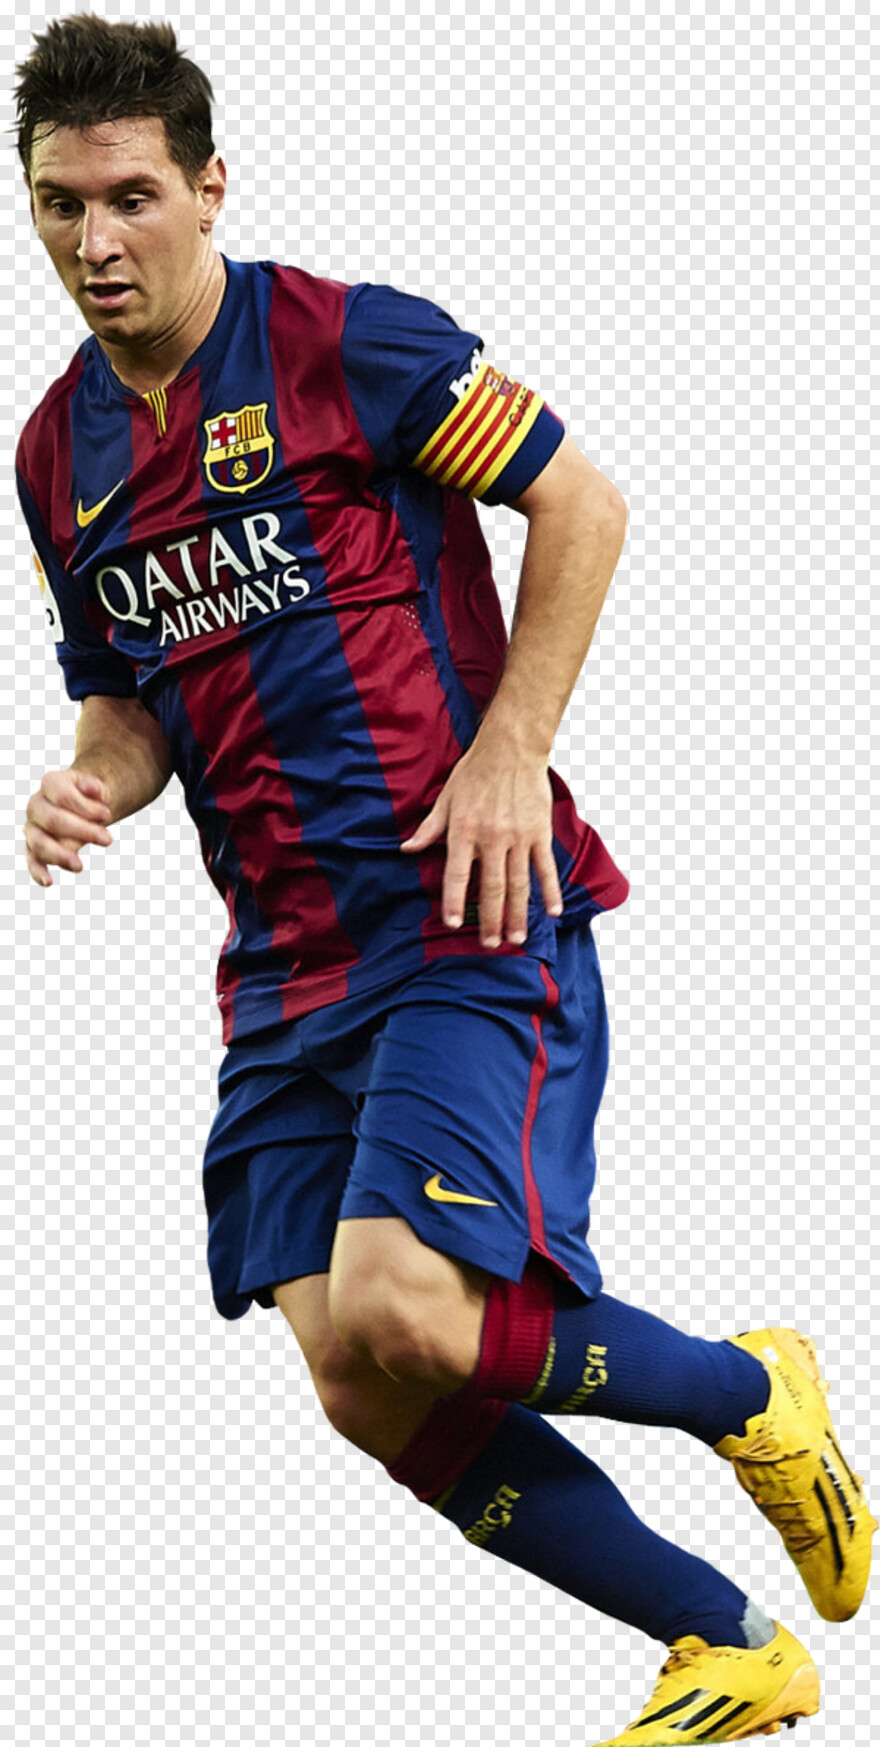 Messi - Lionel Messi Png 2015, HD Png Download - 600x1191 ...